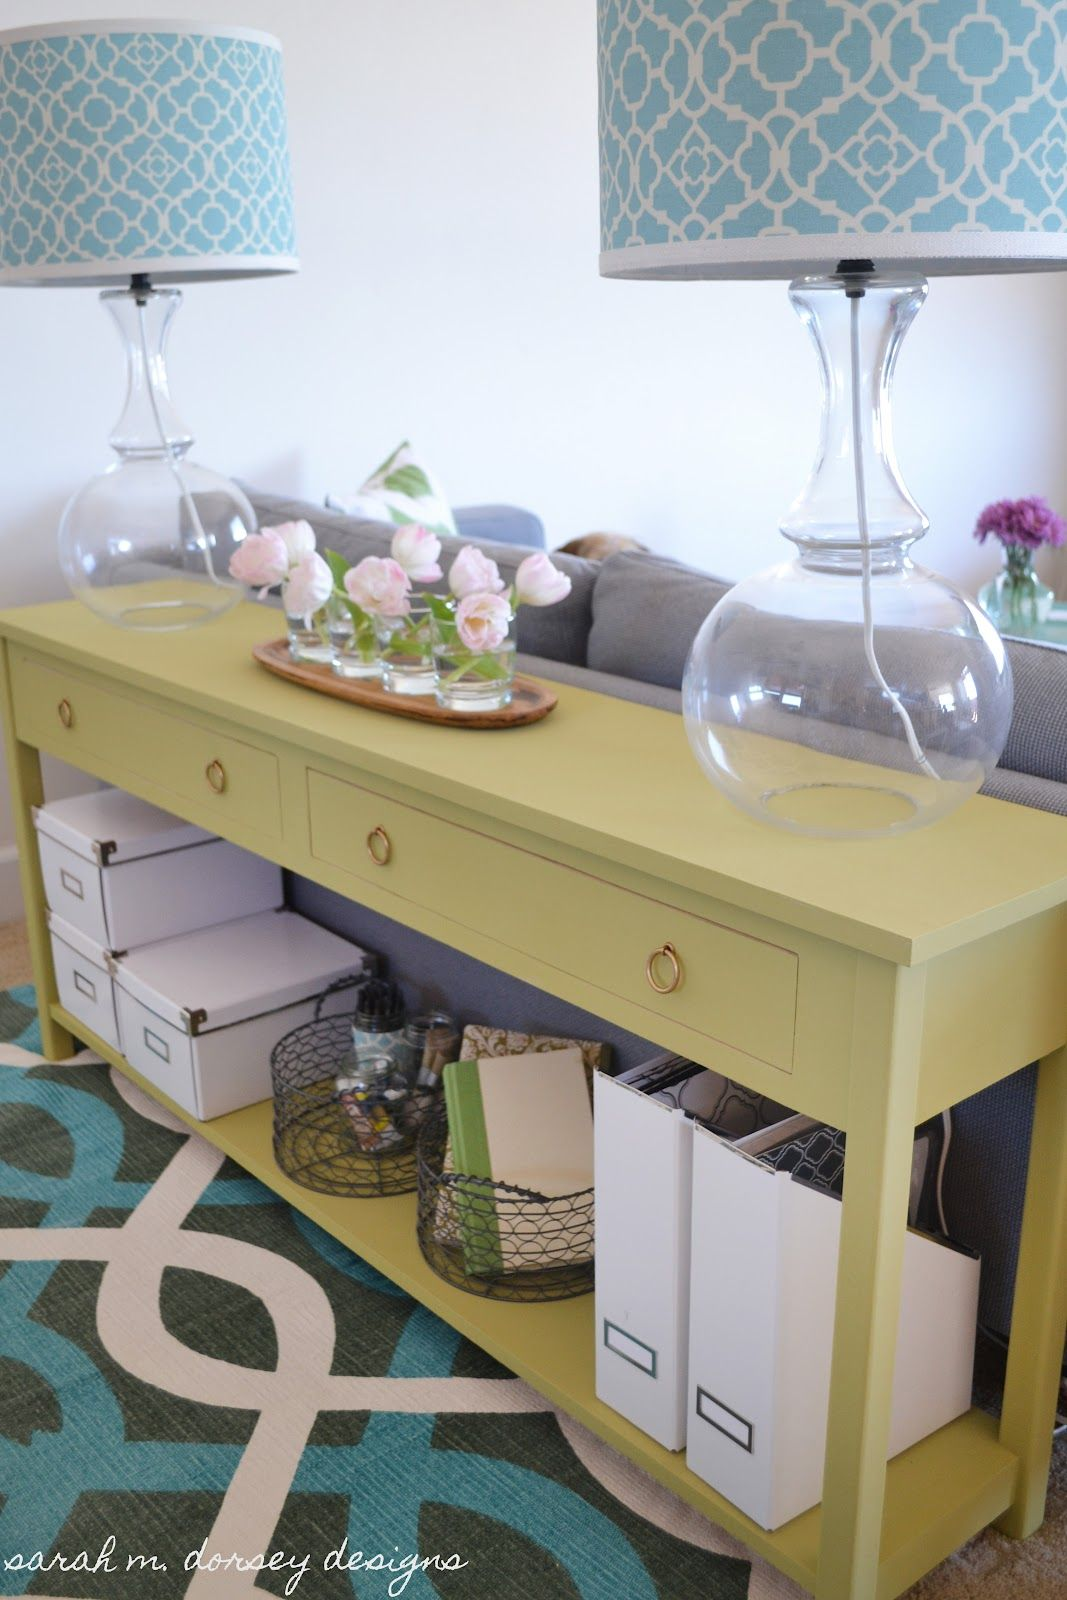 Make sofa table - Plans To Make This Sofa Table This Is Exactly What I Would Like Under The